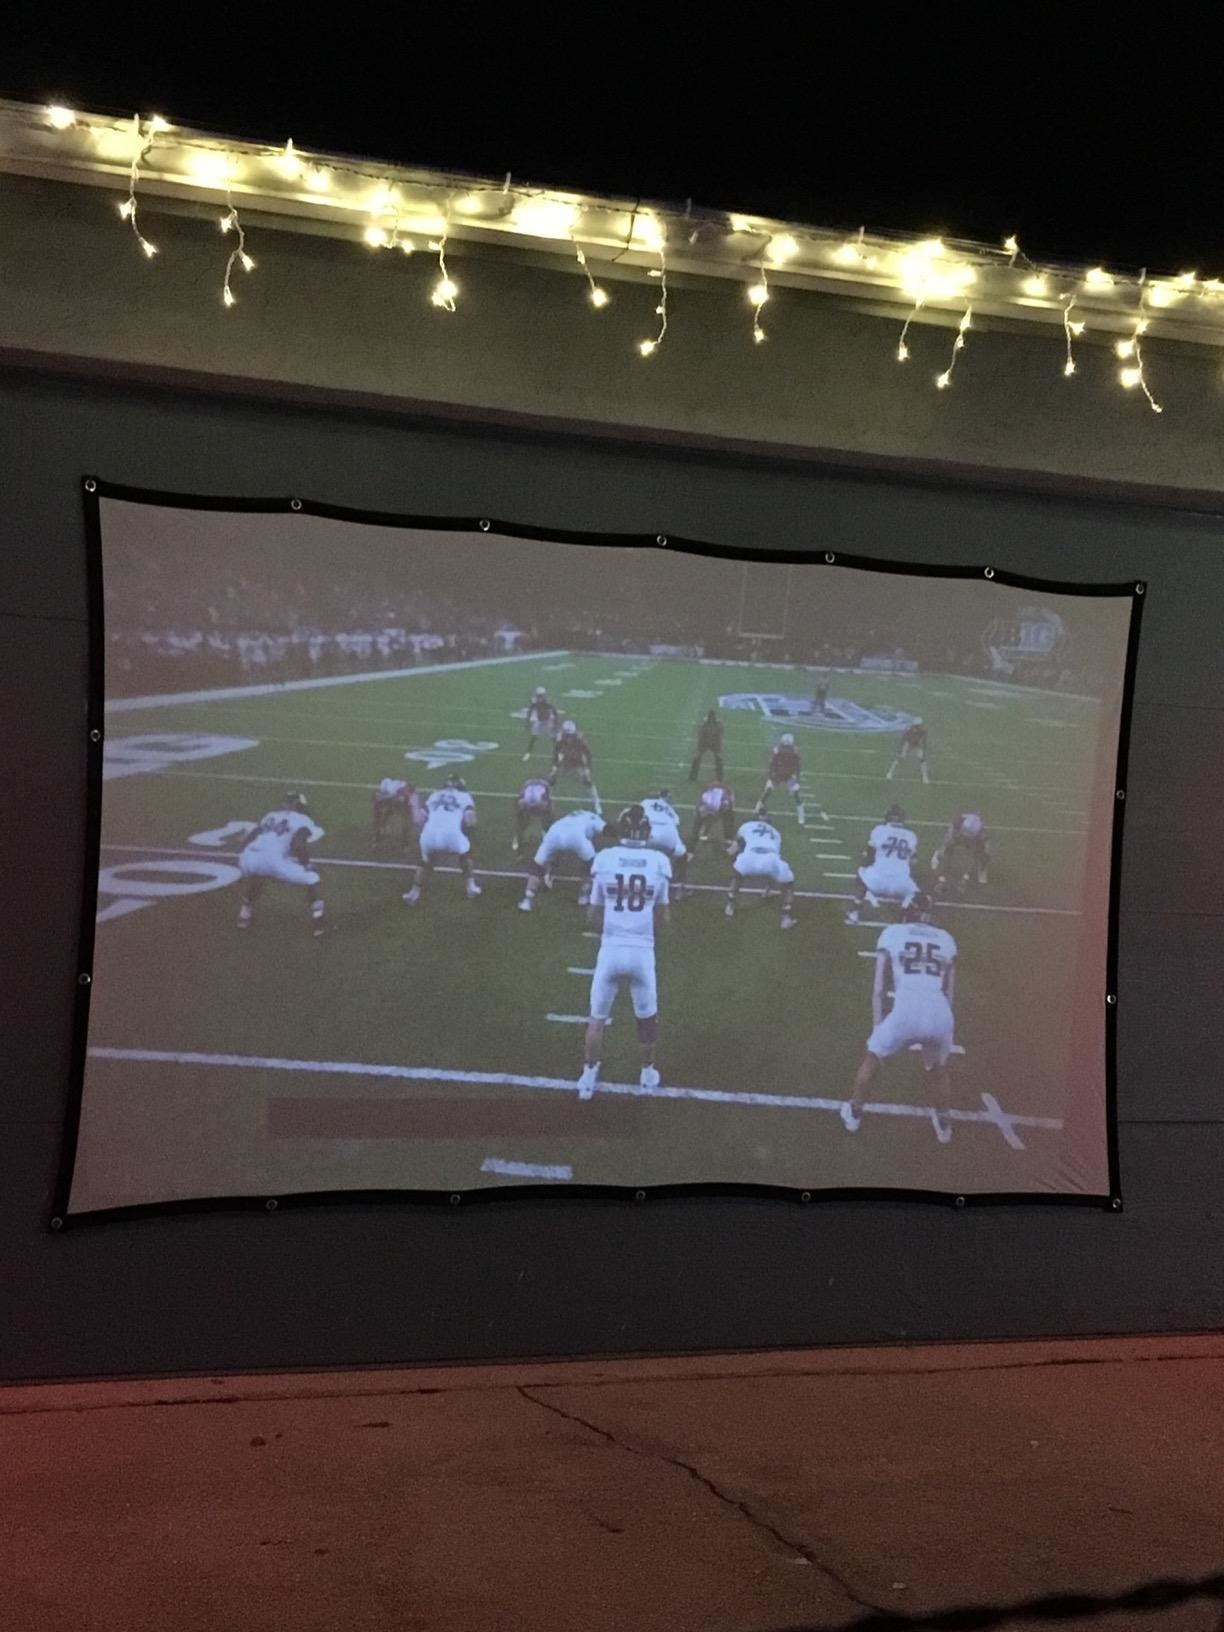 a screen with a football game projected onto it